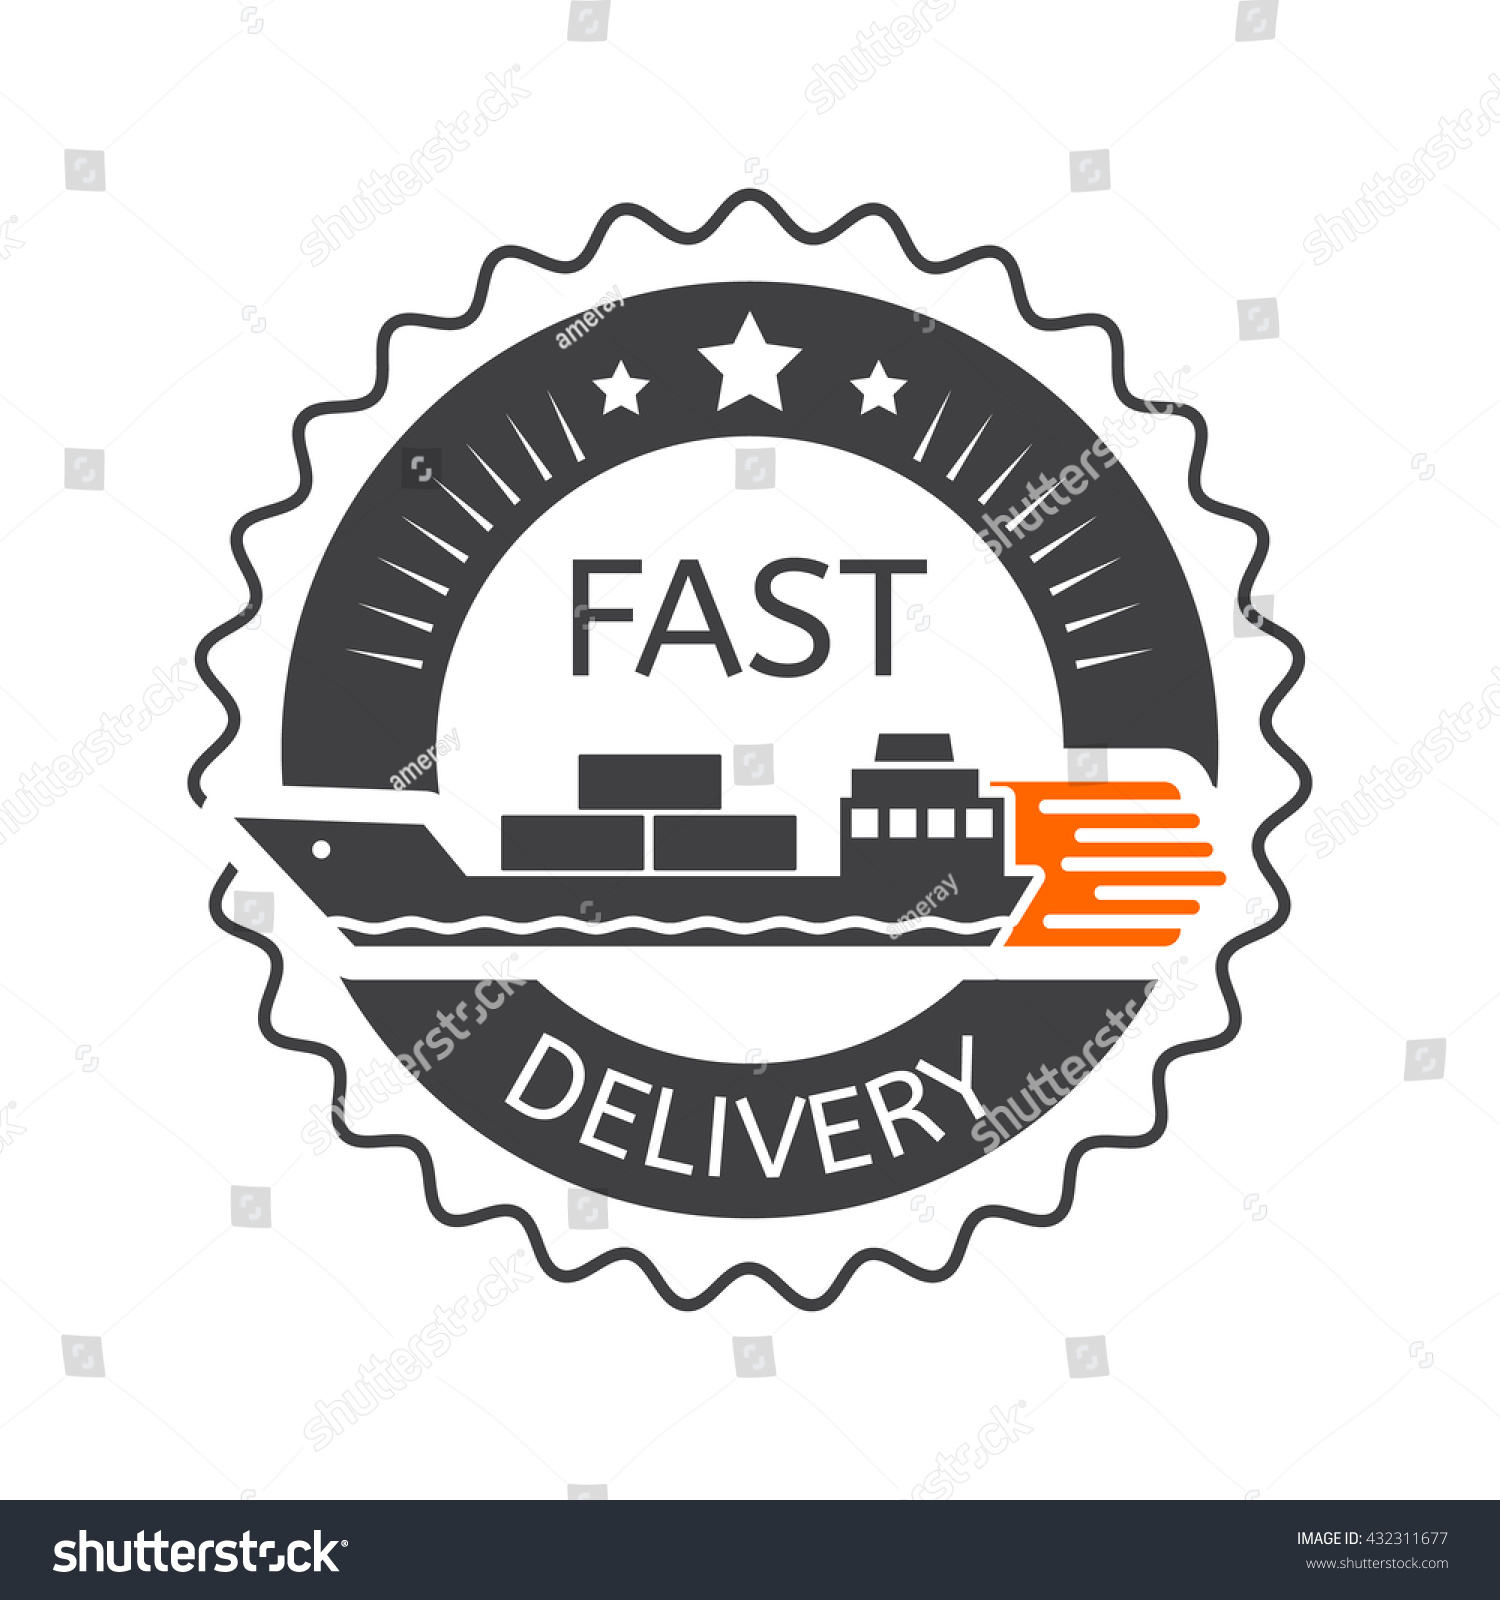 Fast Delivery Badge Shipping Transport Ship Stock Vector ...